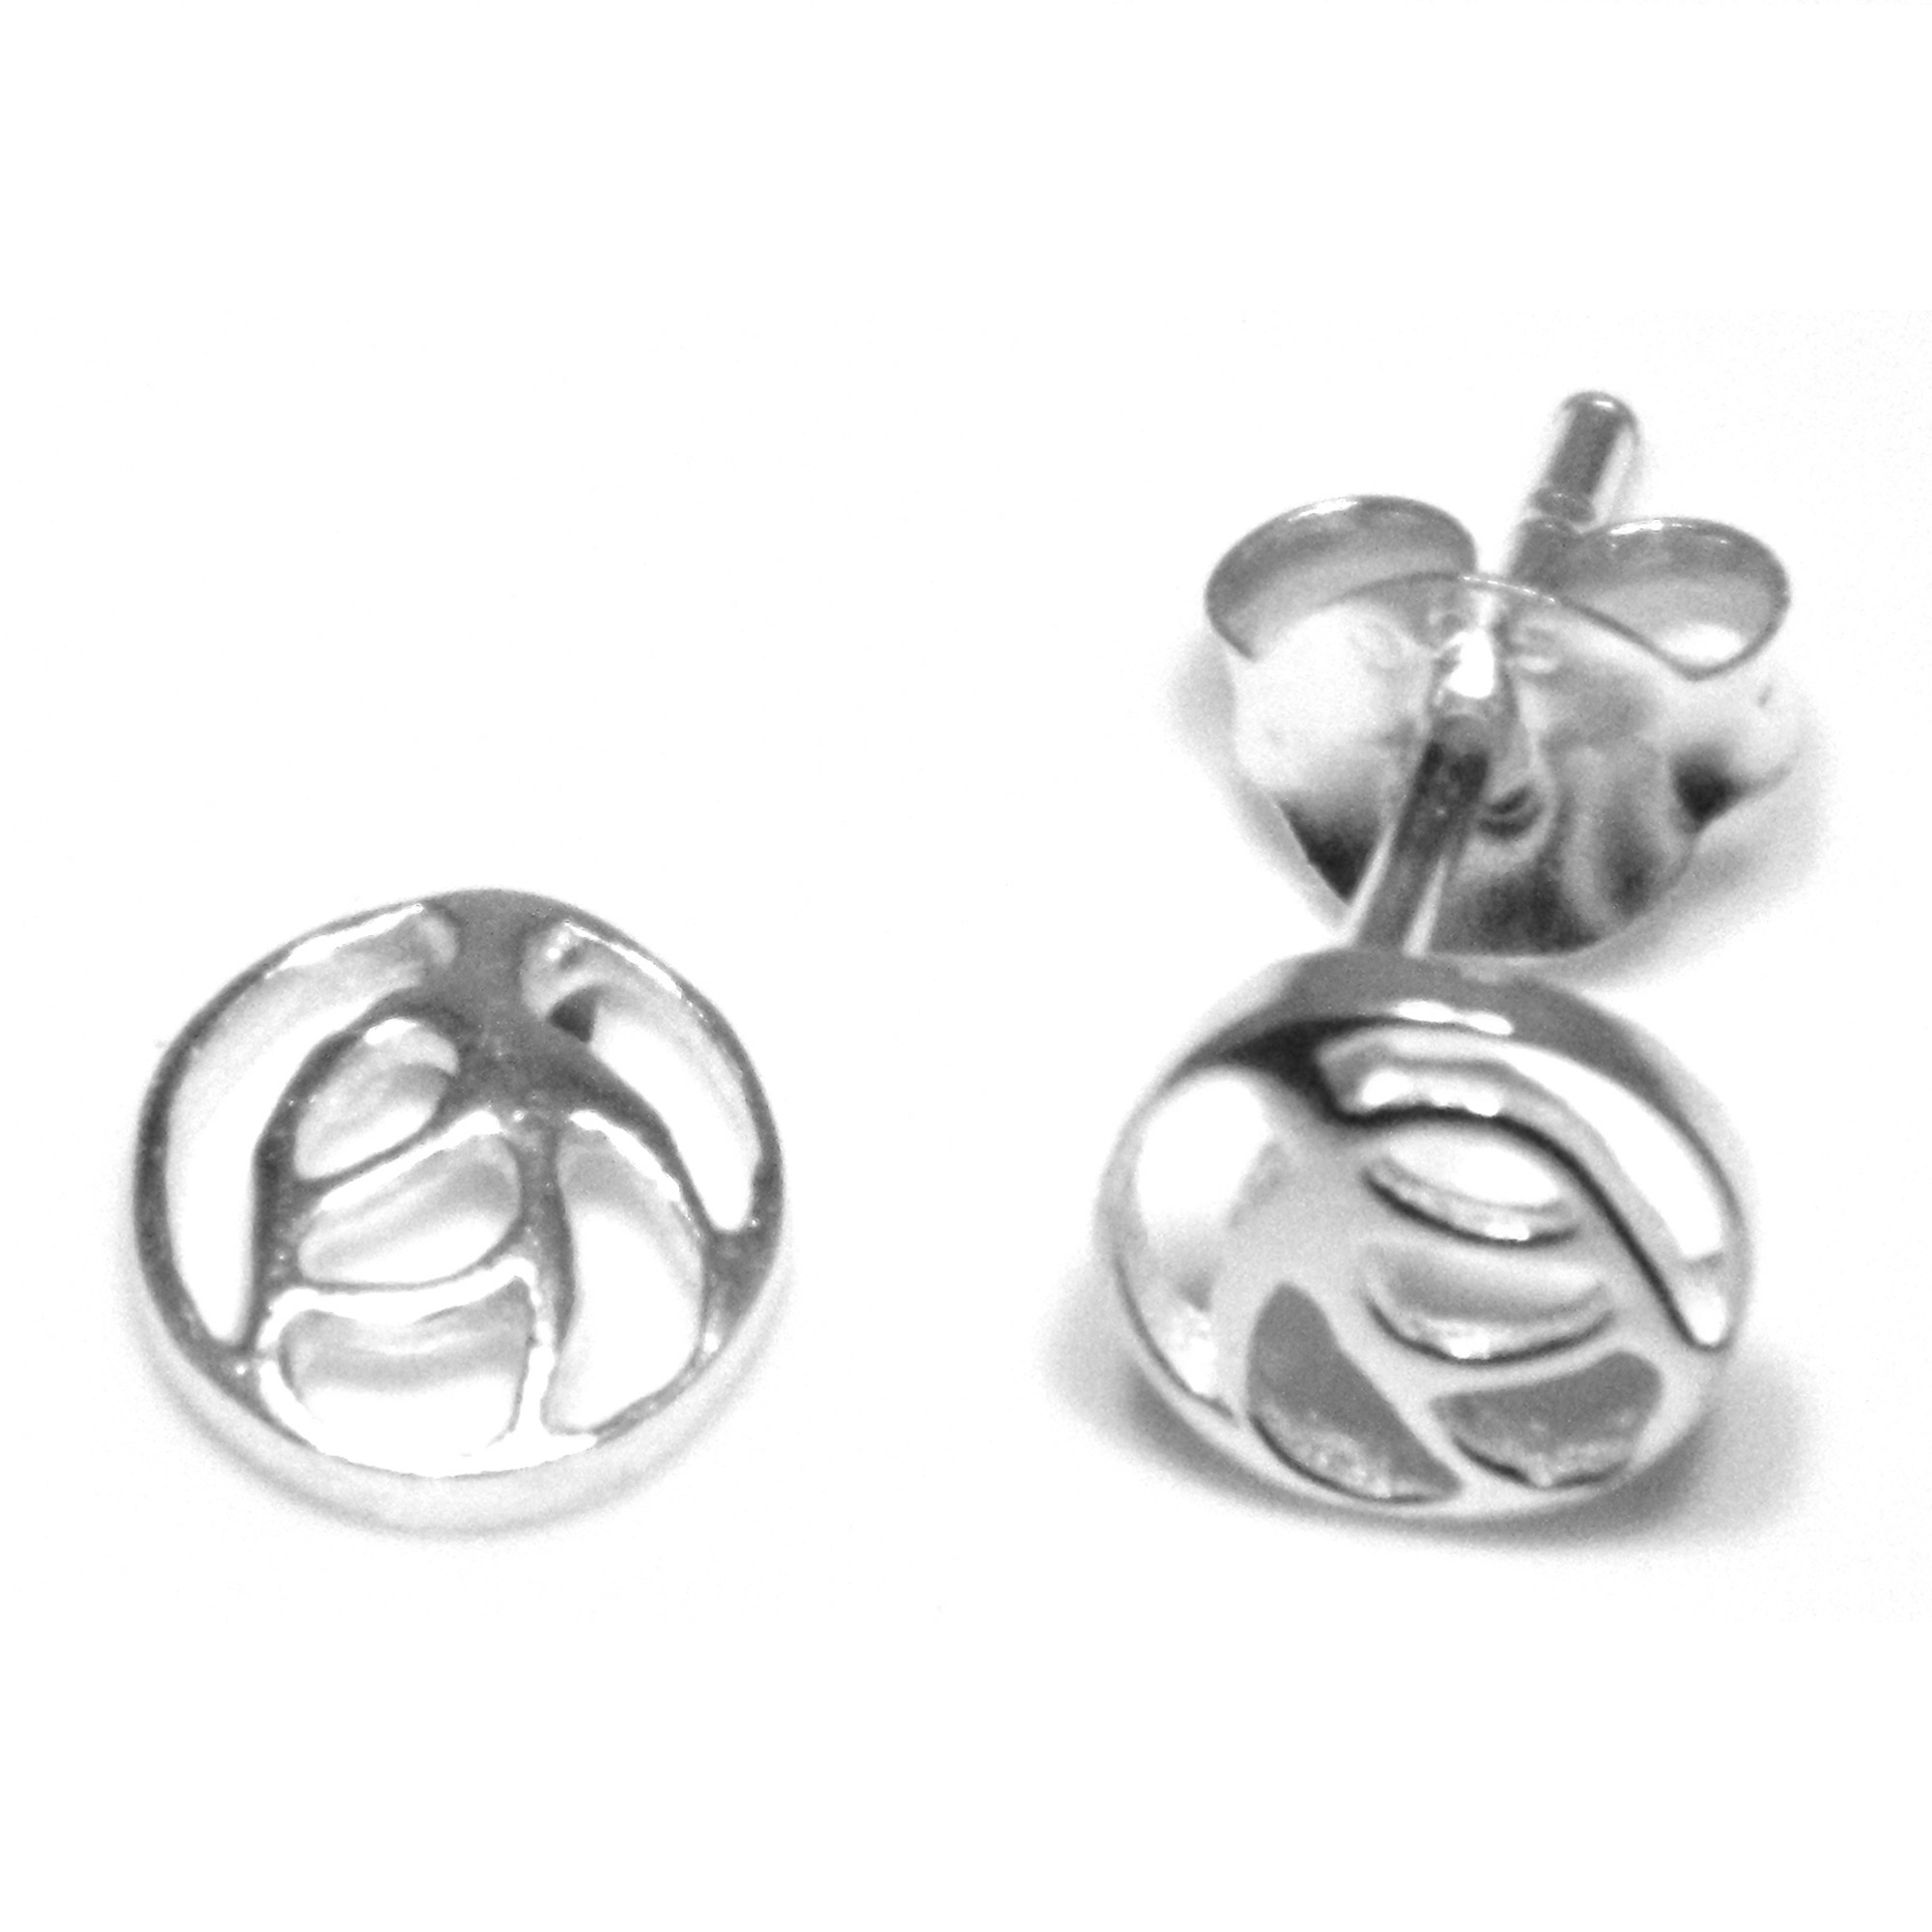 Sterling silver stud earrings Rennie Mackintosh Glasgow Rose